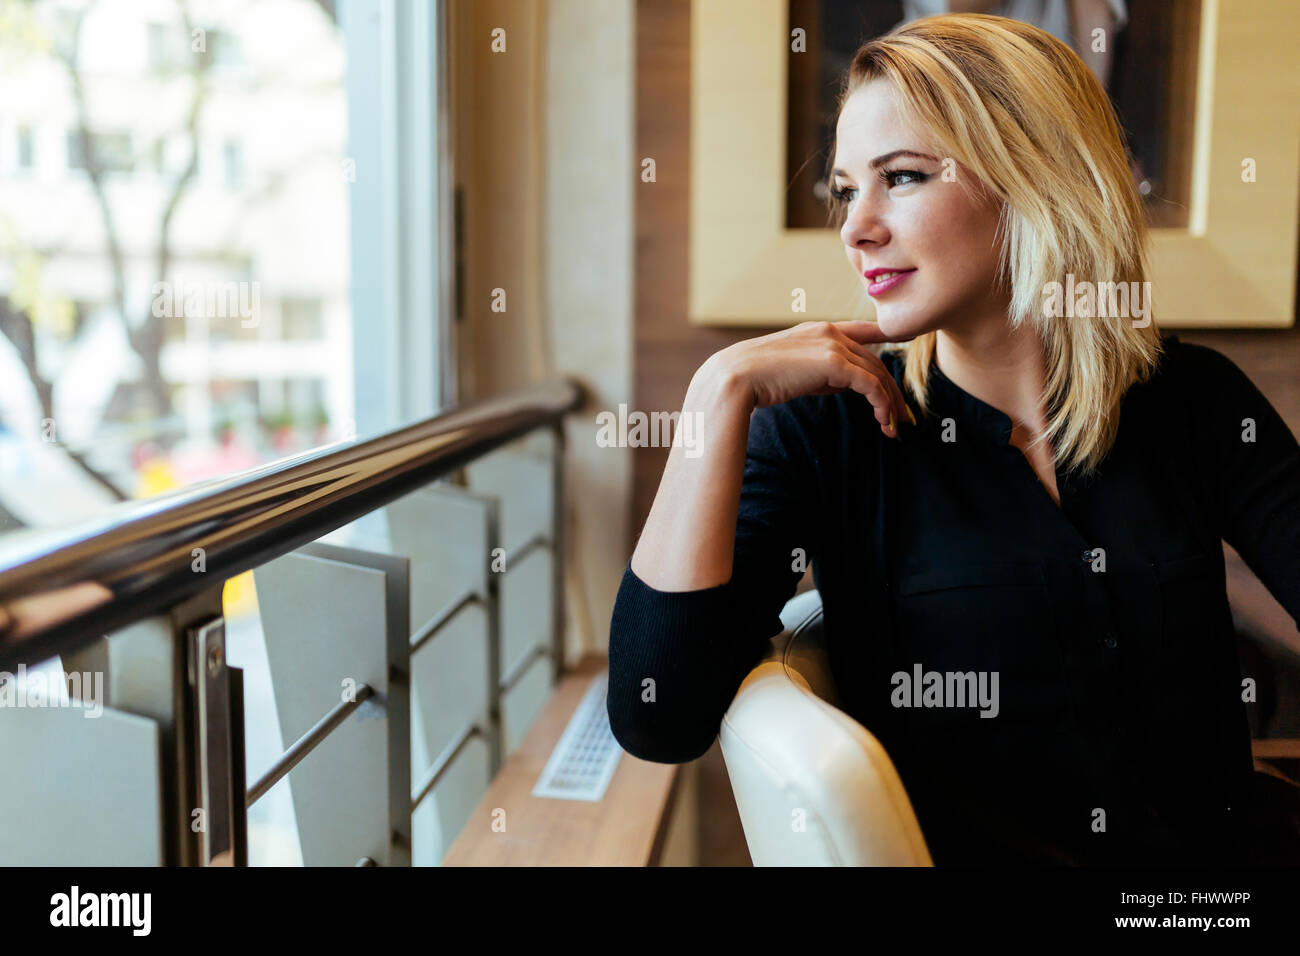 Blonde businesswoman looking out the window - Stock Image